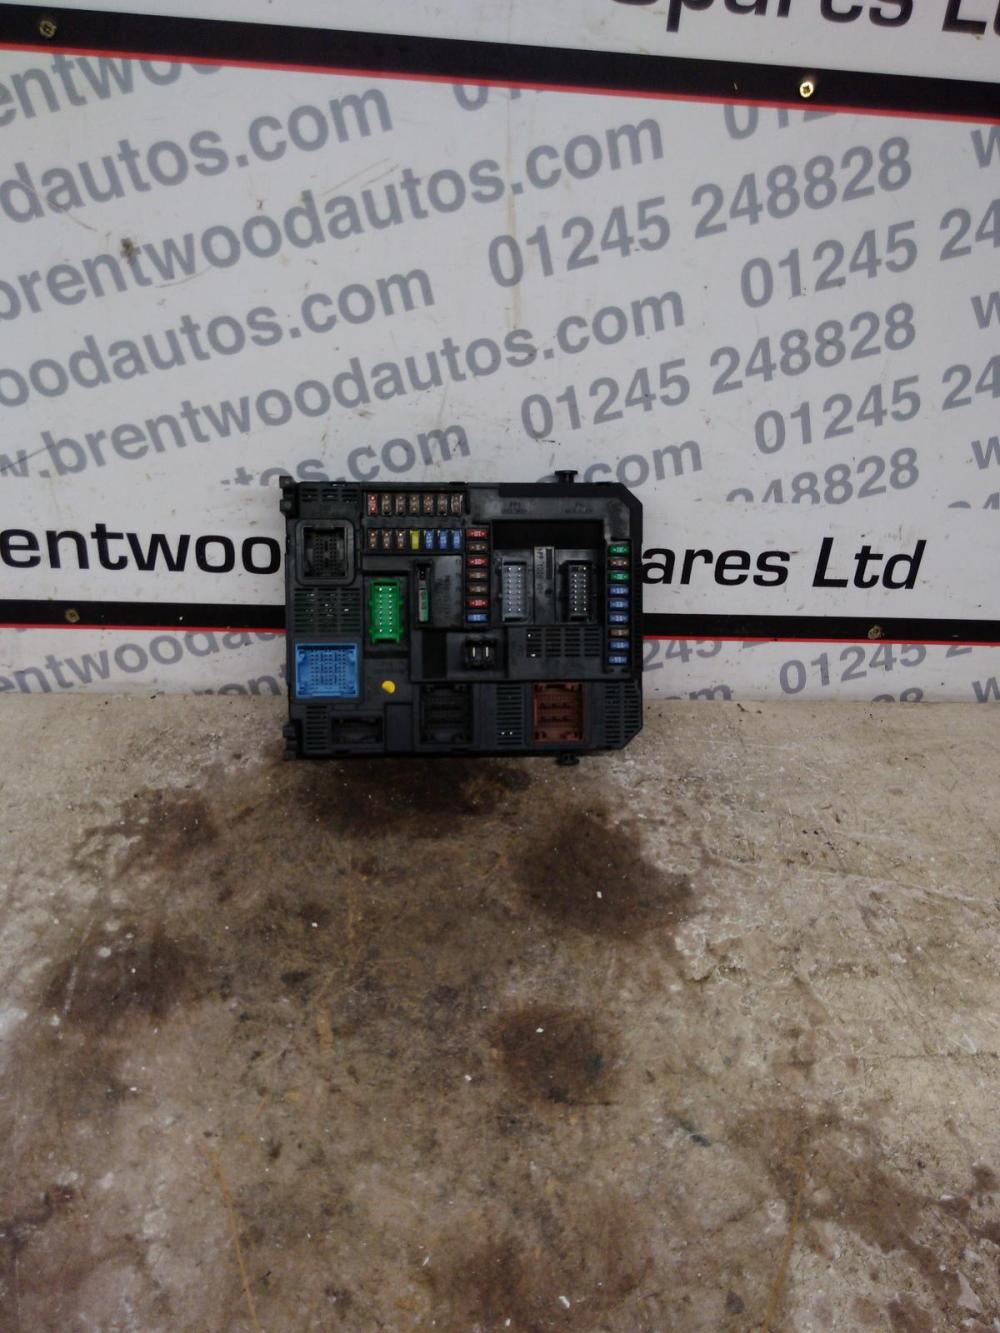 medium resolution of details about citroen c4 picasso mk2 2013 1 6 hdi fuse box bsi 9804067480